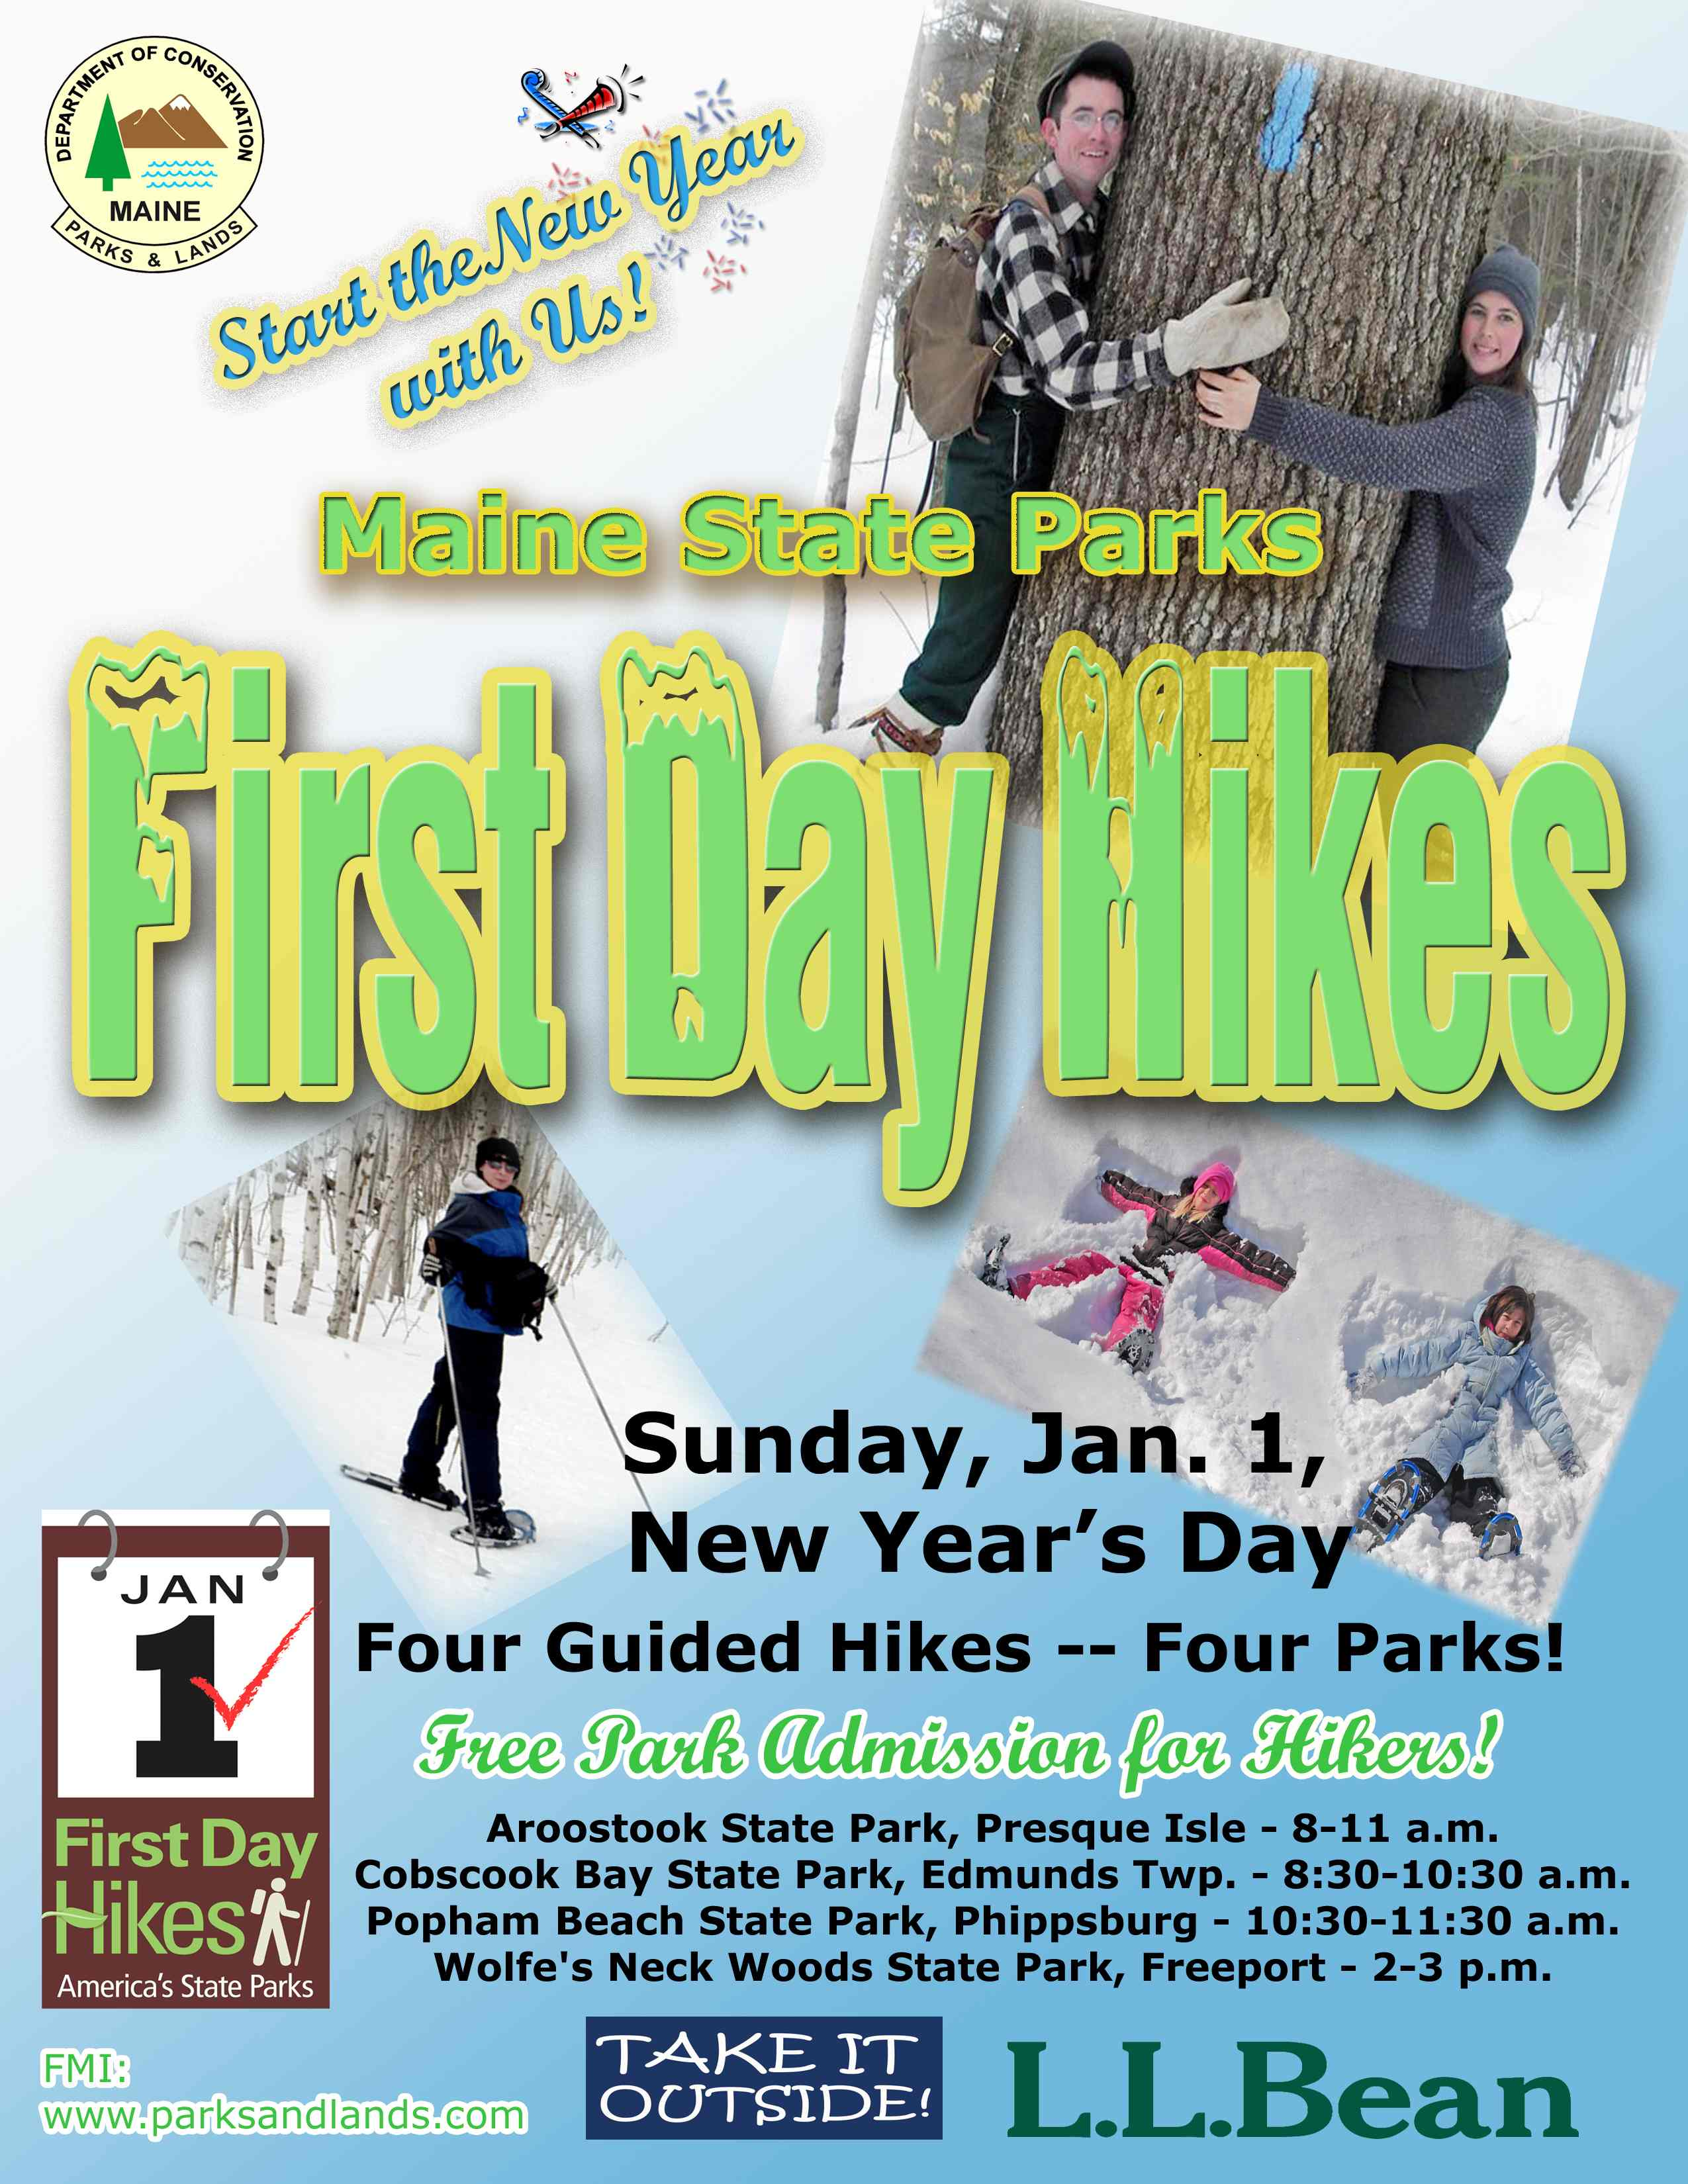 Take a free guided hike in one of Maine's state parks on New Year's Day